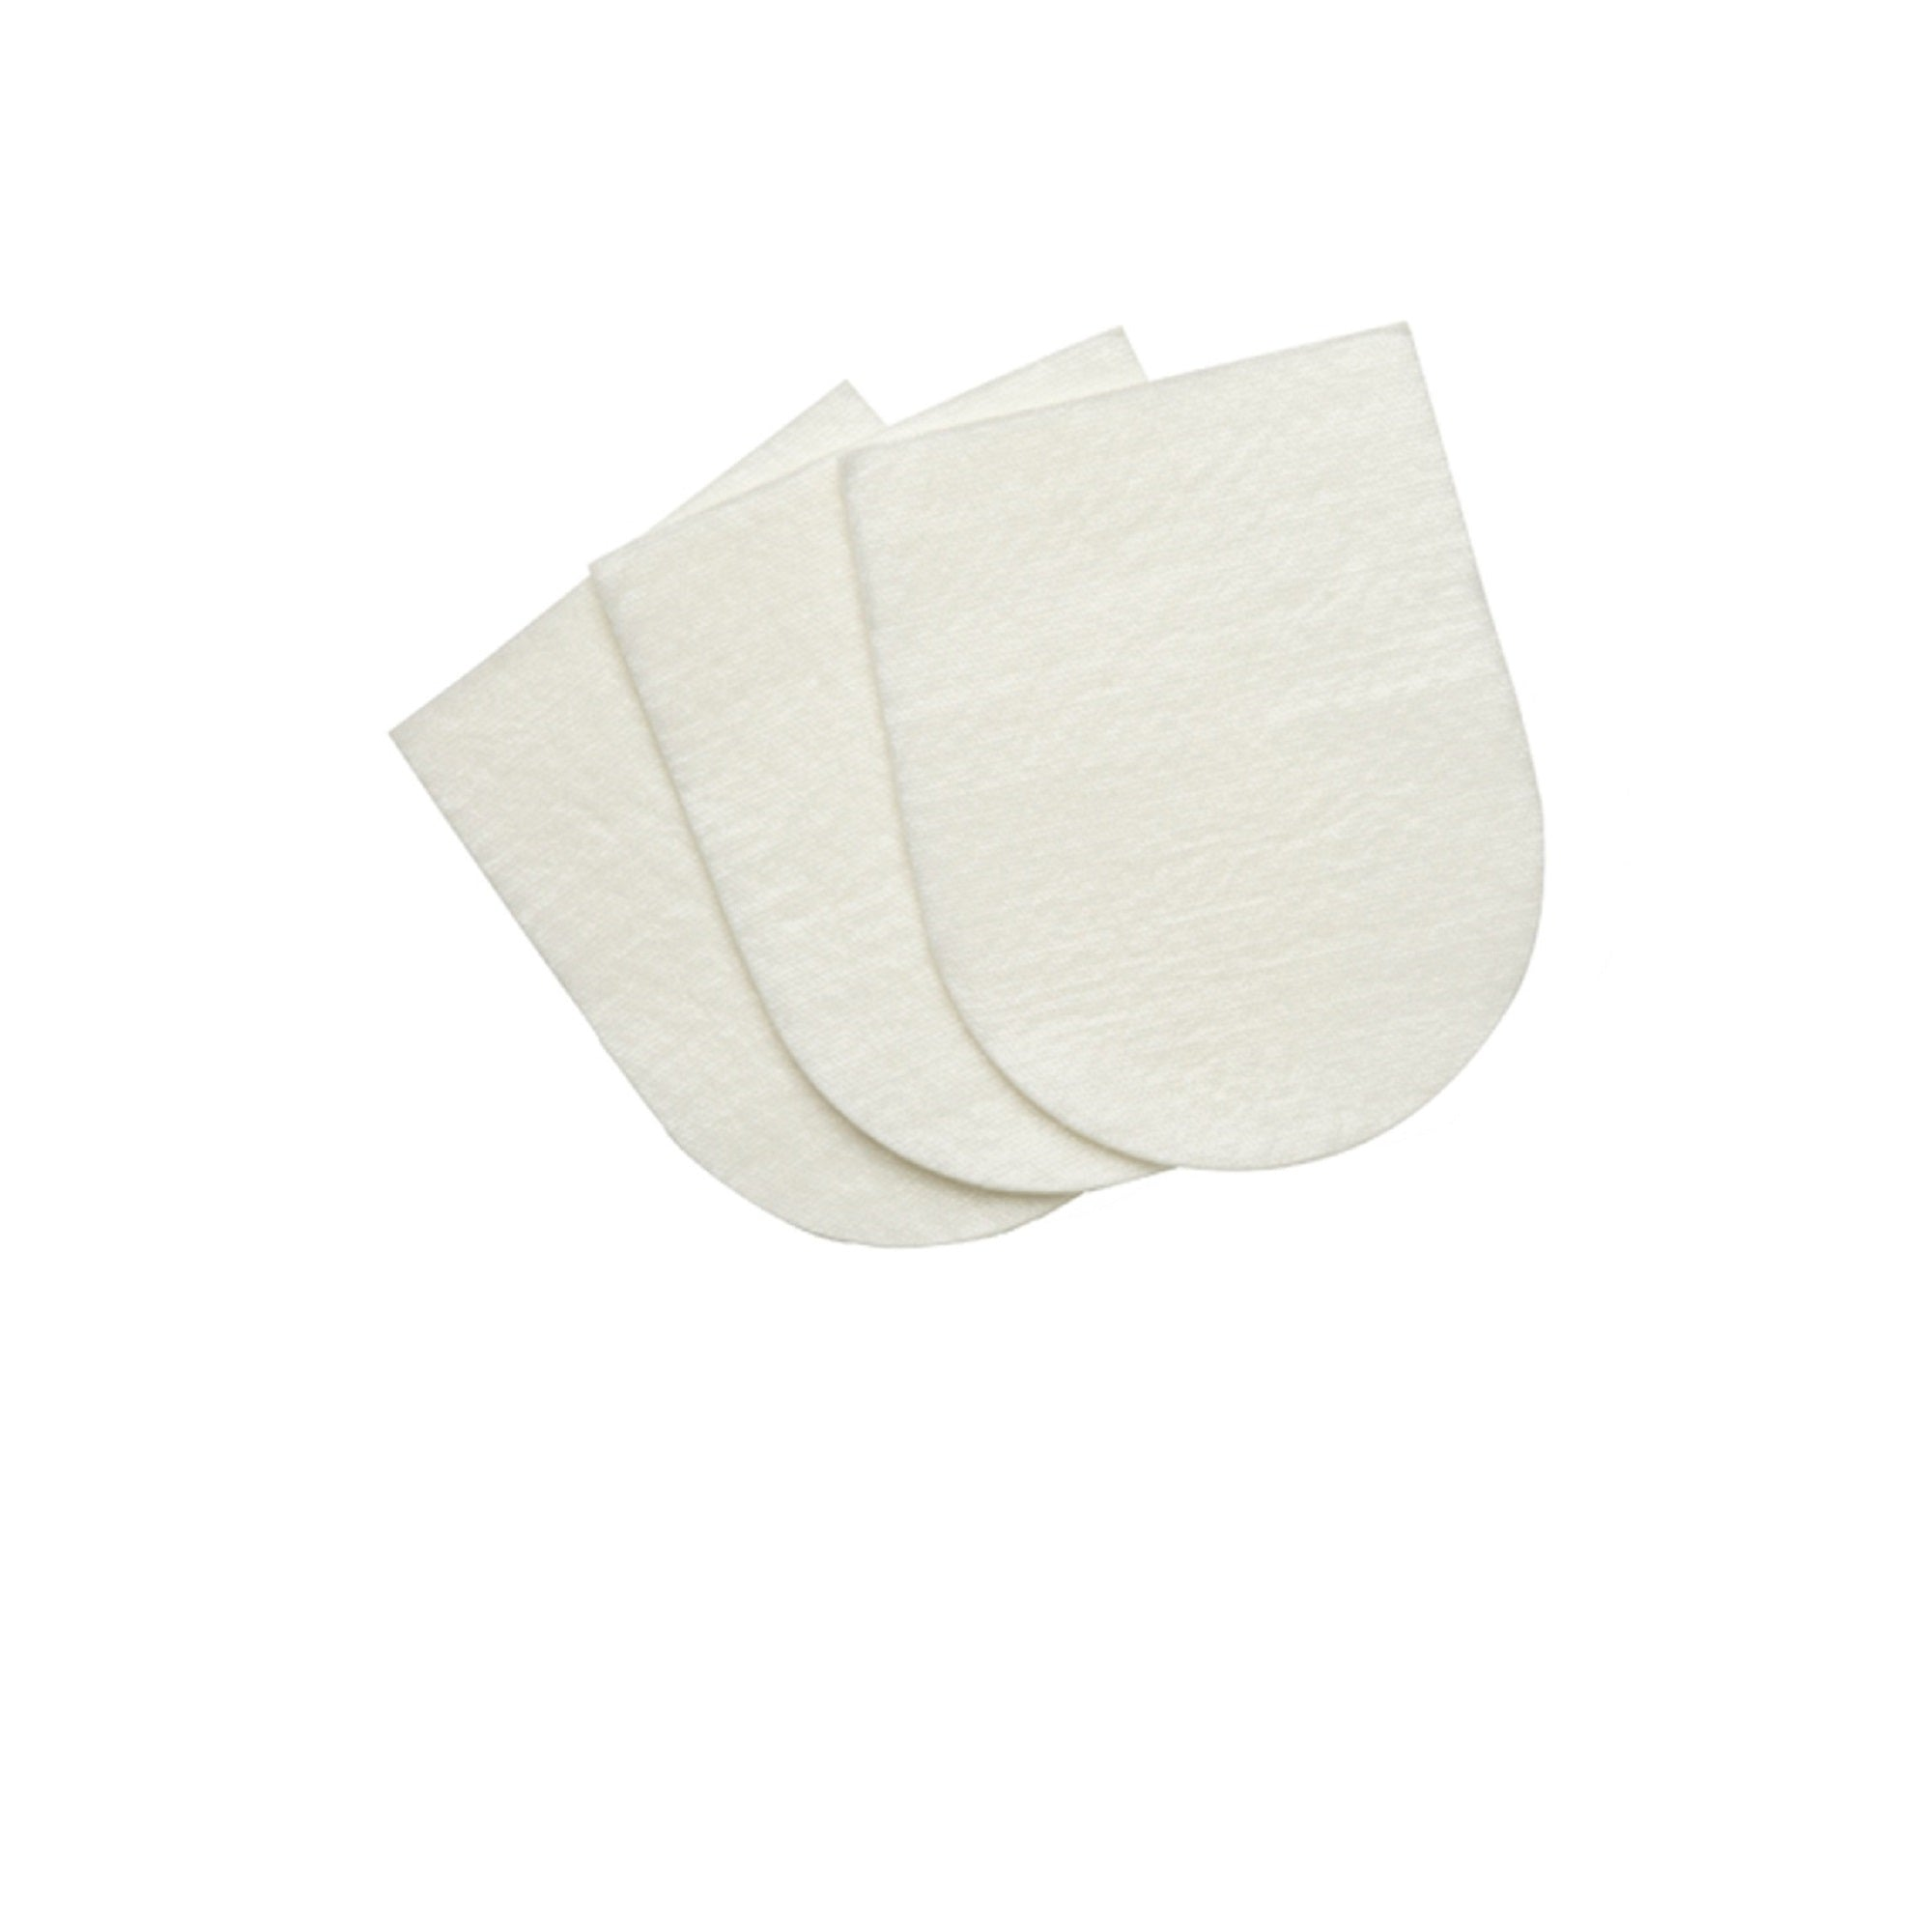 Image of three Healer's Petcare gauze pads that are shaped like a dog's paw.